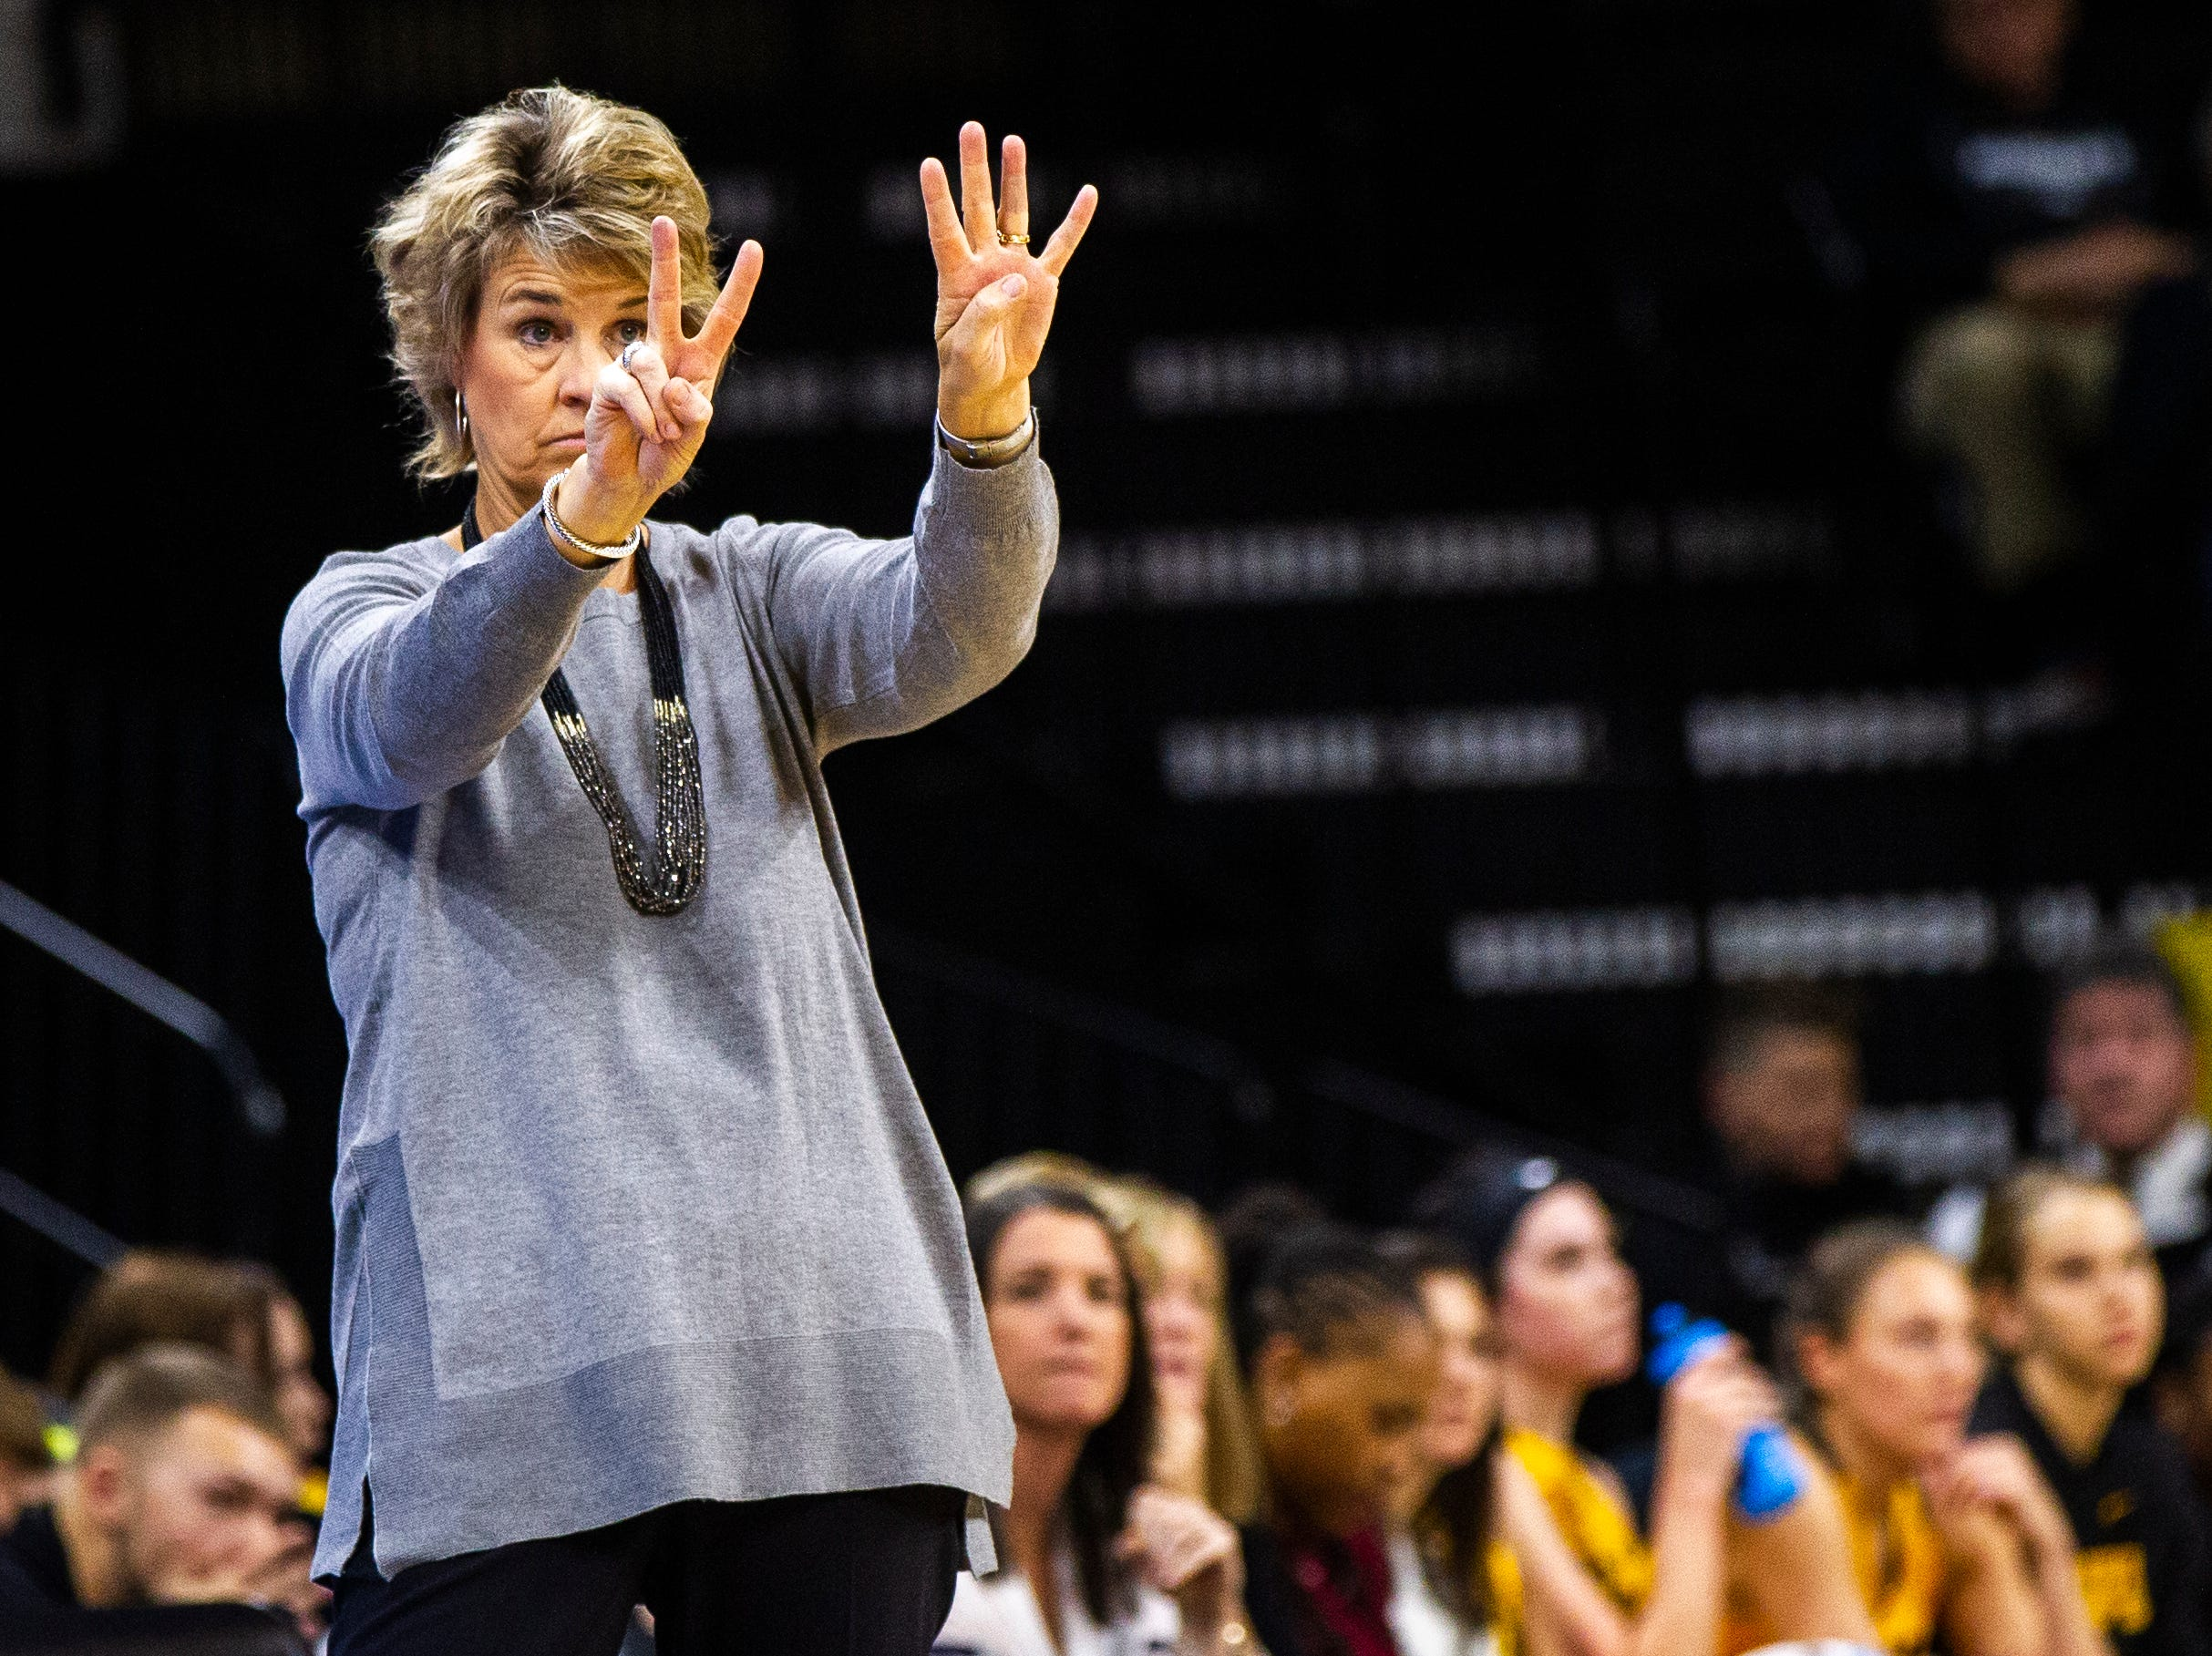 Iowa head coach Lisa Bluder calls out during a NCAA women's basketball game on Sunday, Dec. 2, 2018, at Carver-Hawkeye Arena in Iowa City.